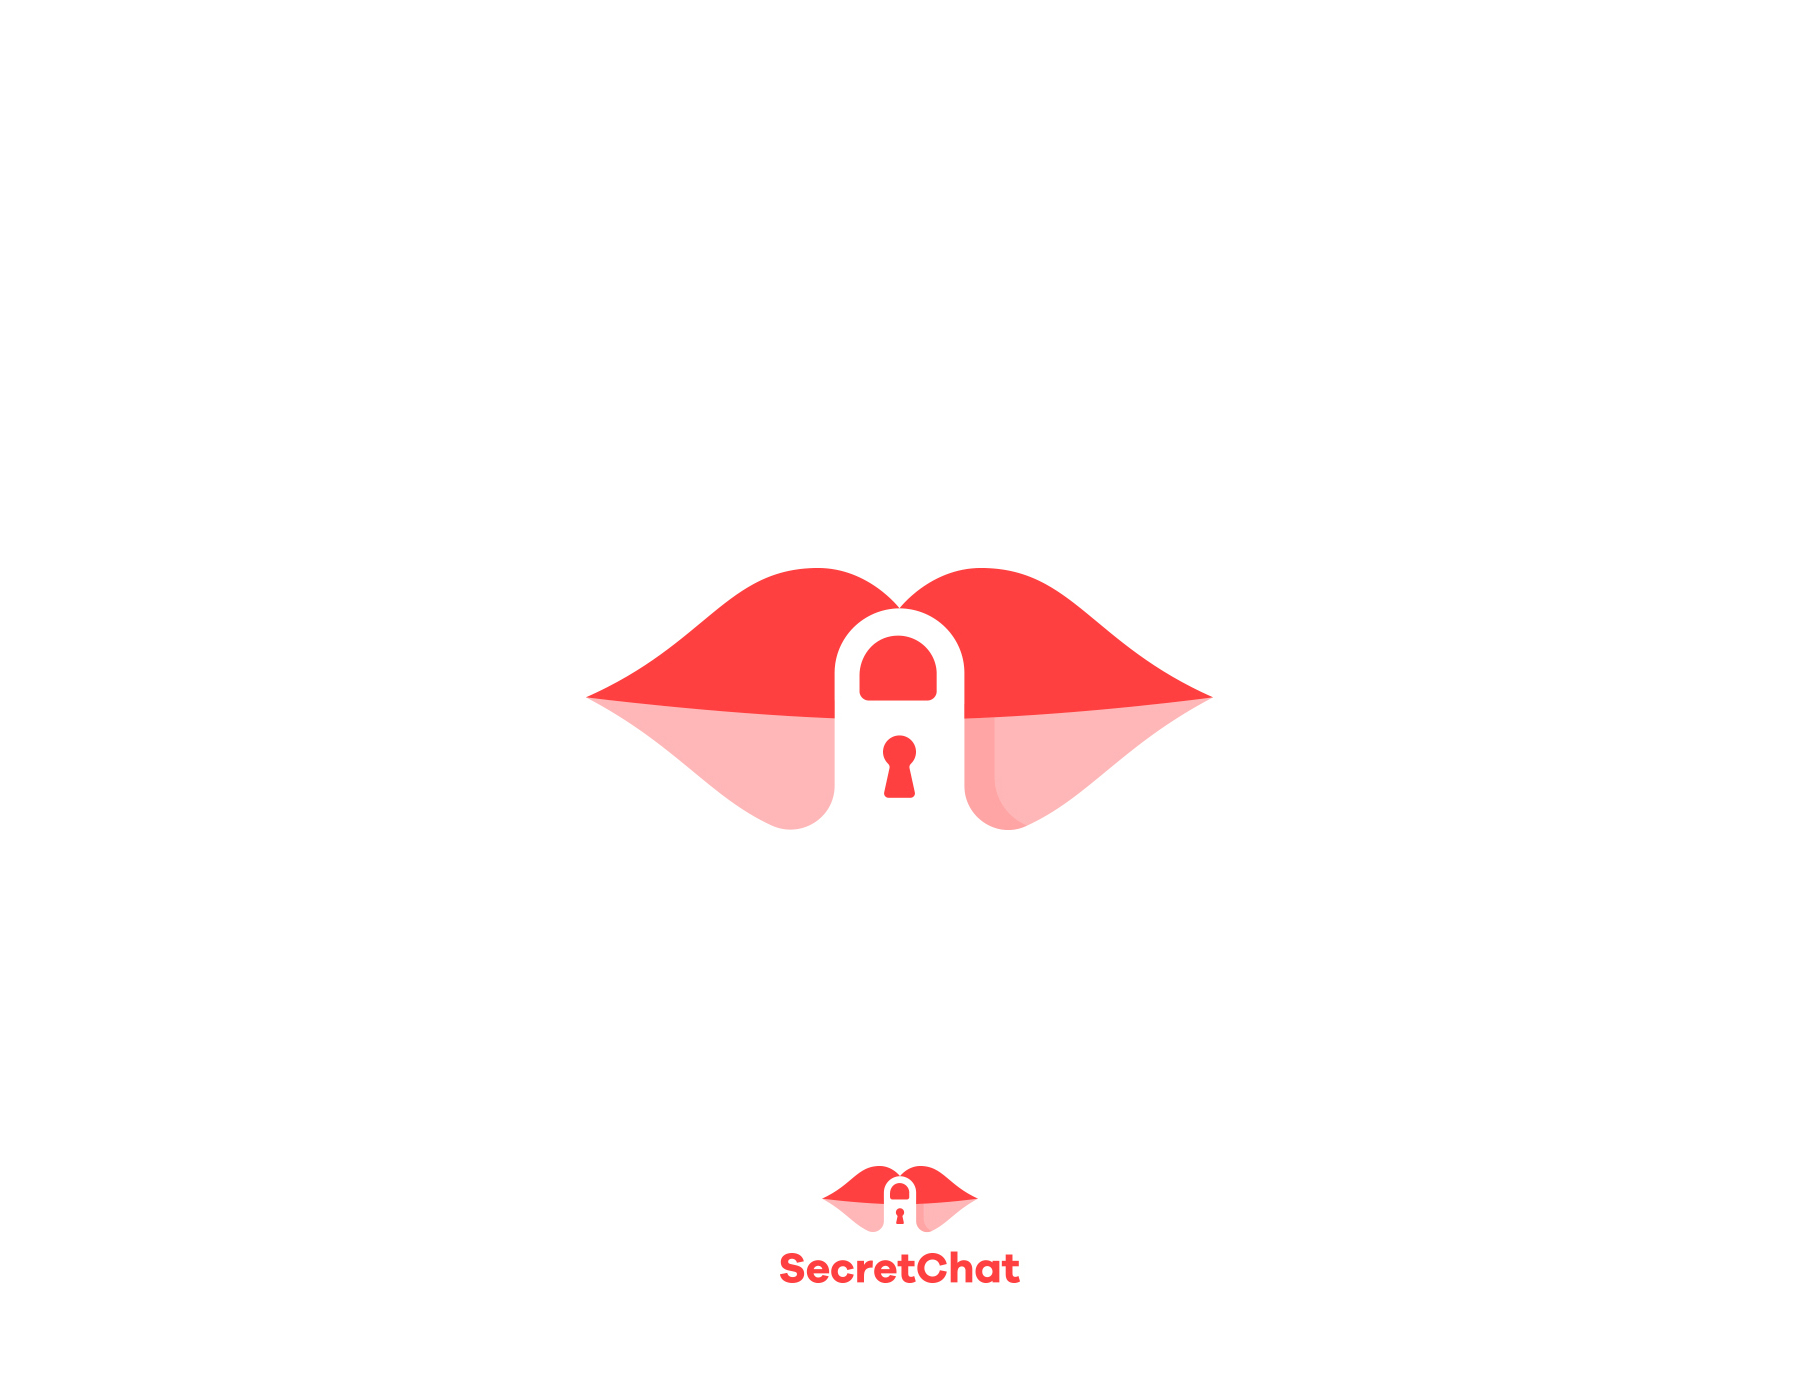 Creative logos with hidden symbolic meaning - SecretChat